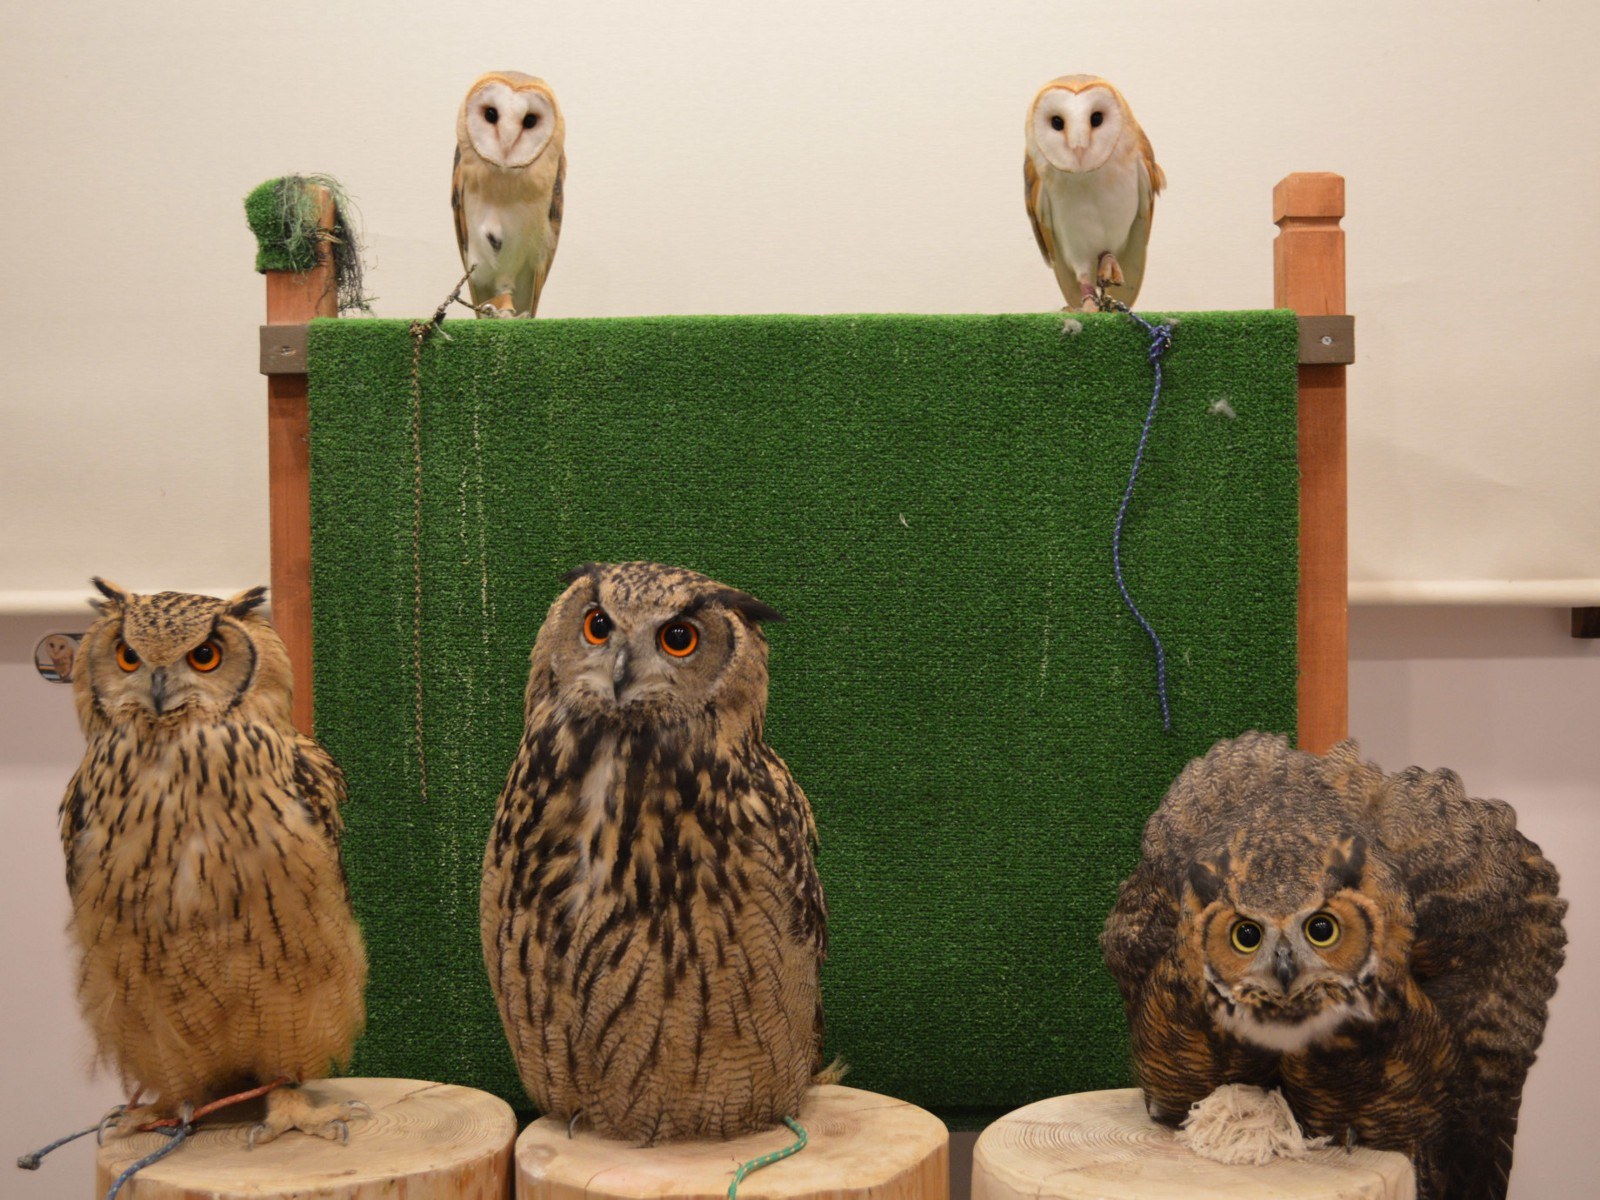 Owls at Owl Cafe